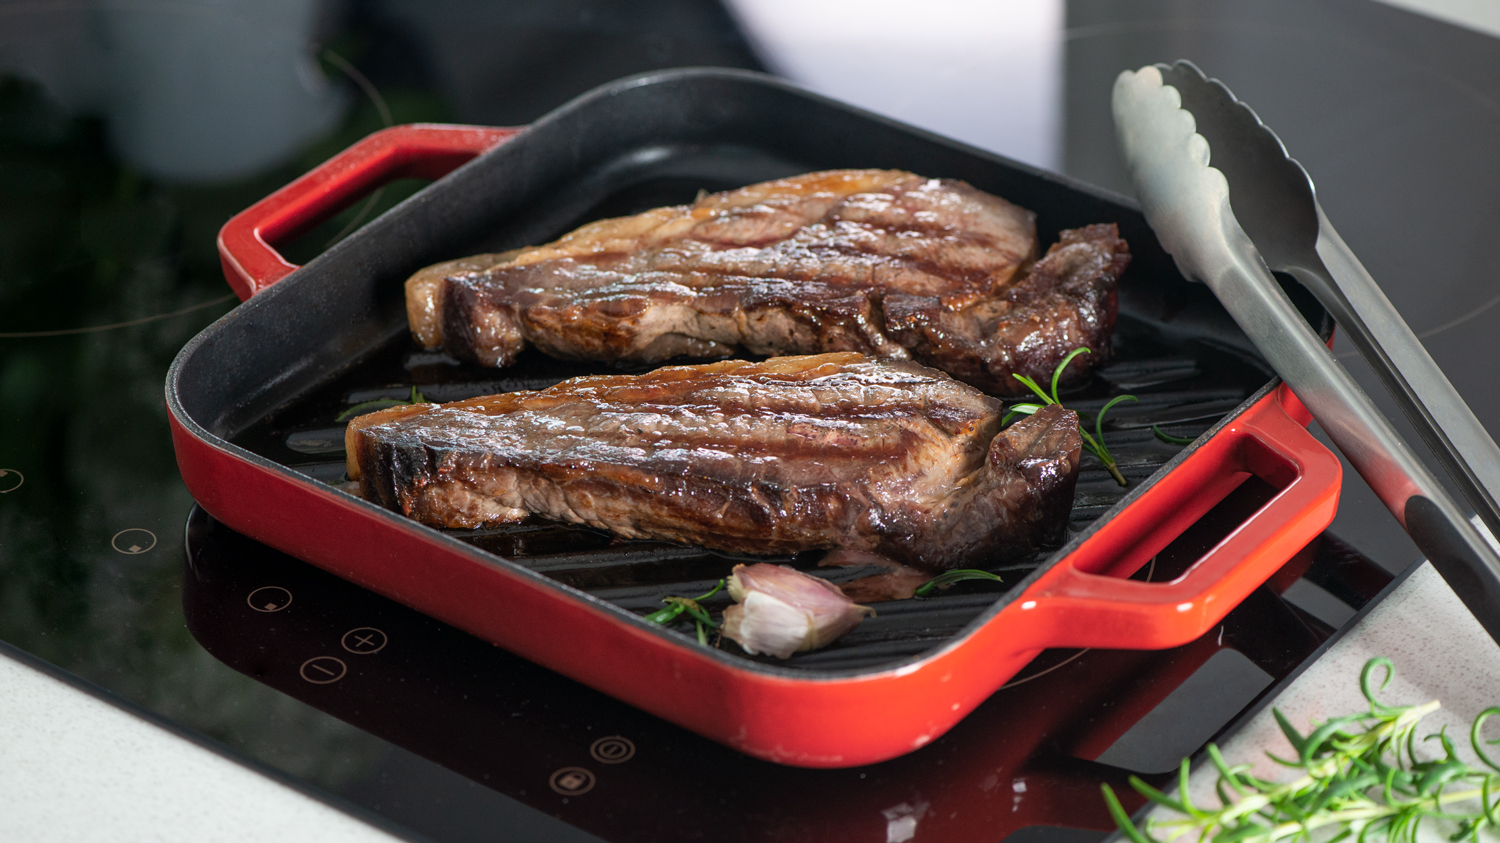 Sirloin steak cooking on a ProCook Red Cast Iron Griddle